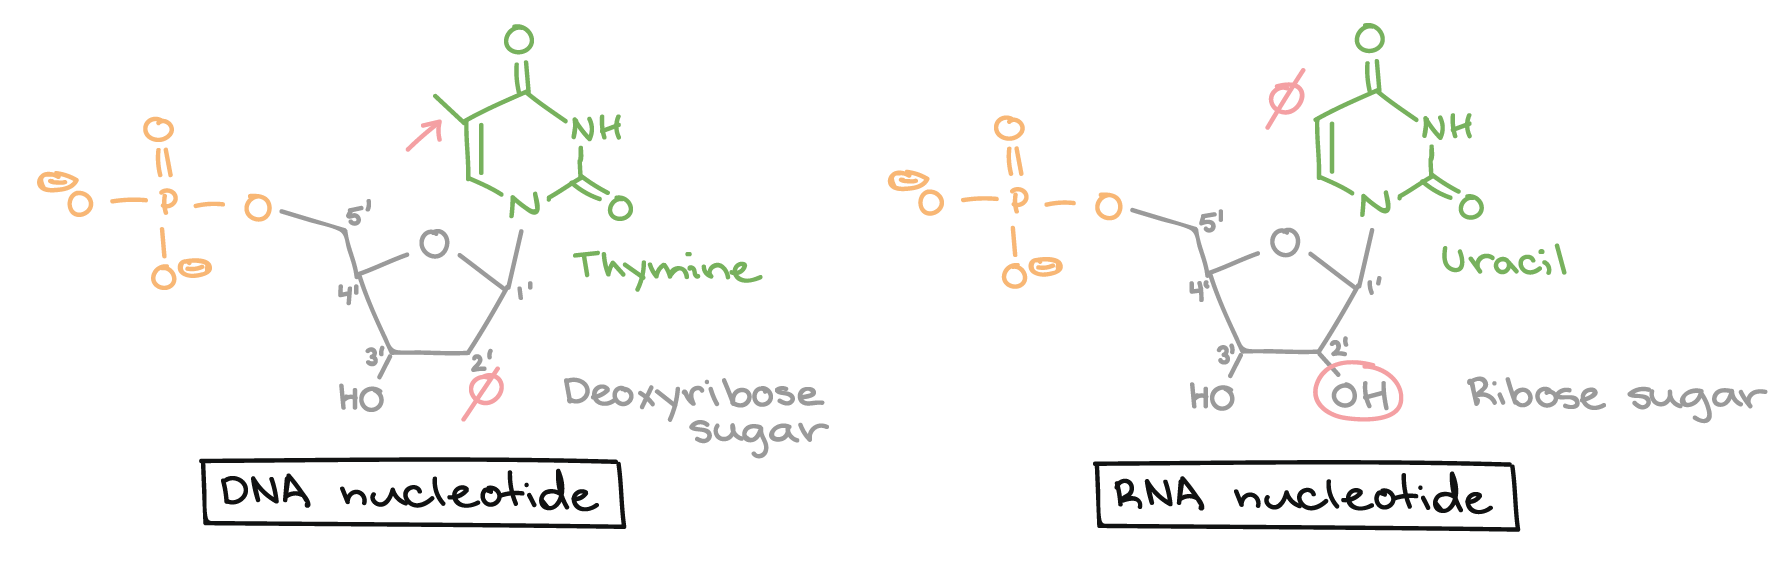 hight resolution of dna nucleotide lacks a hydroxyl group on the 2 carbon of the sugar